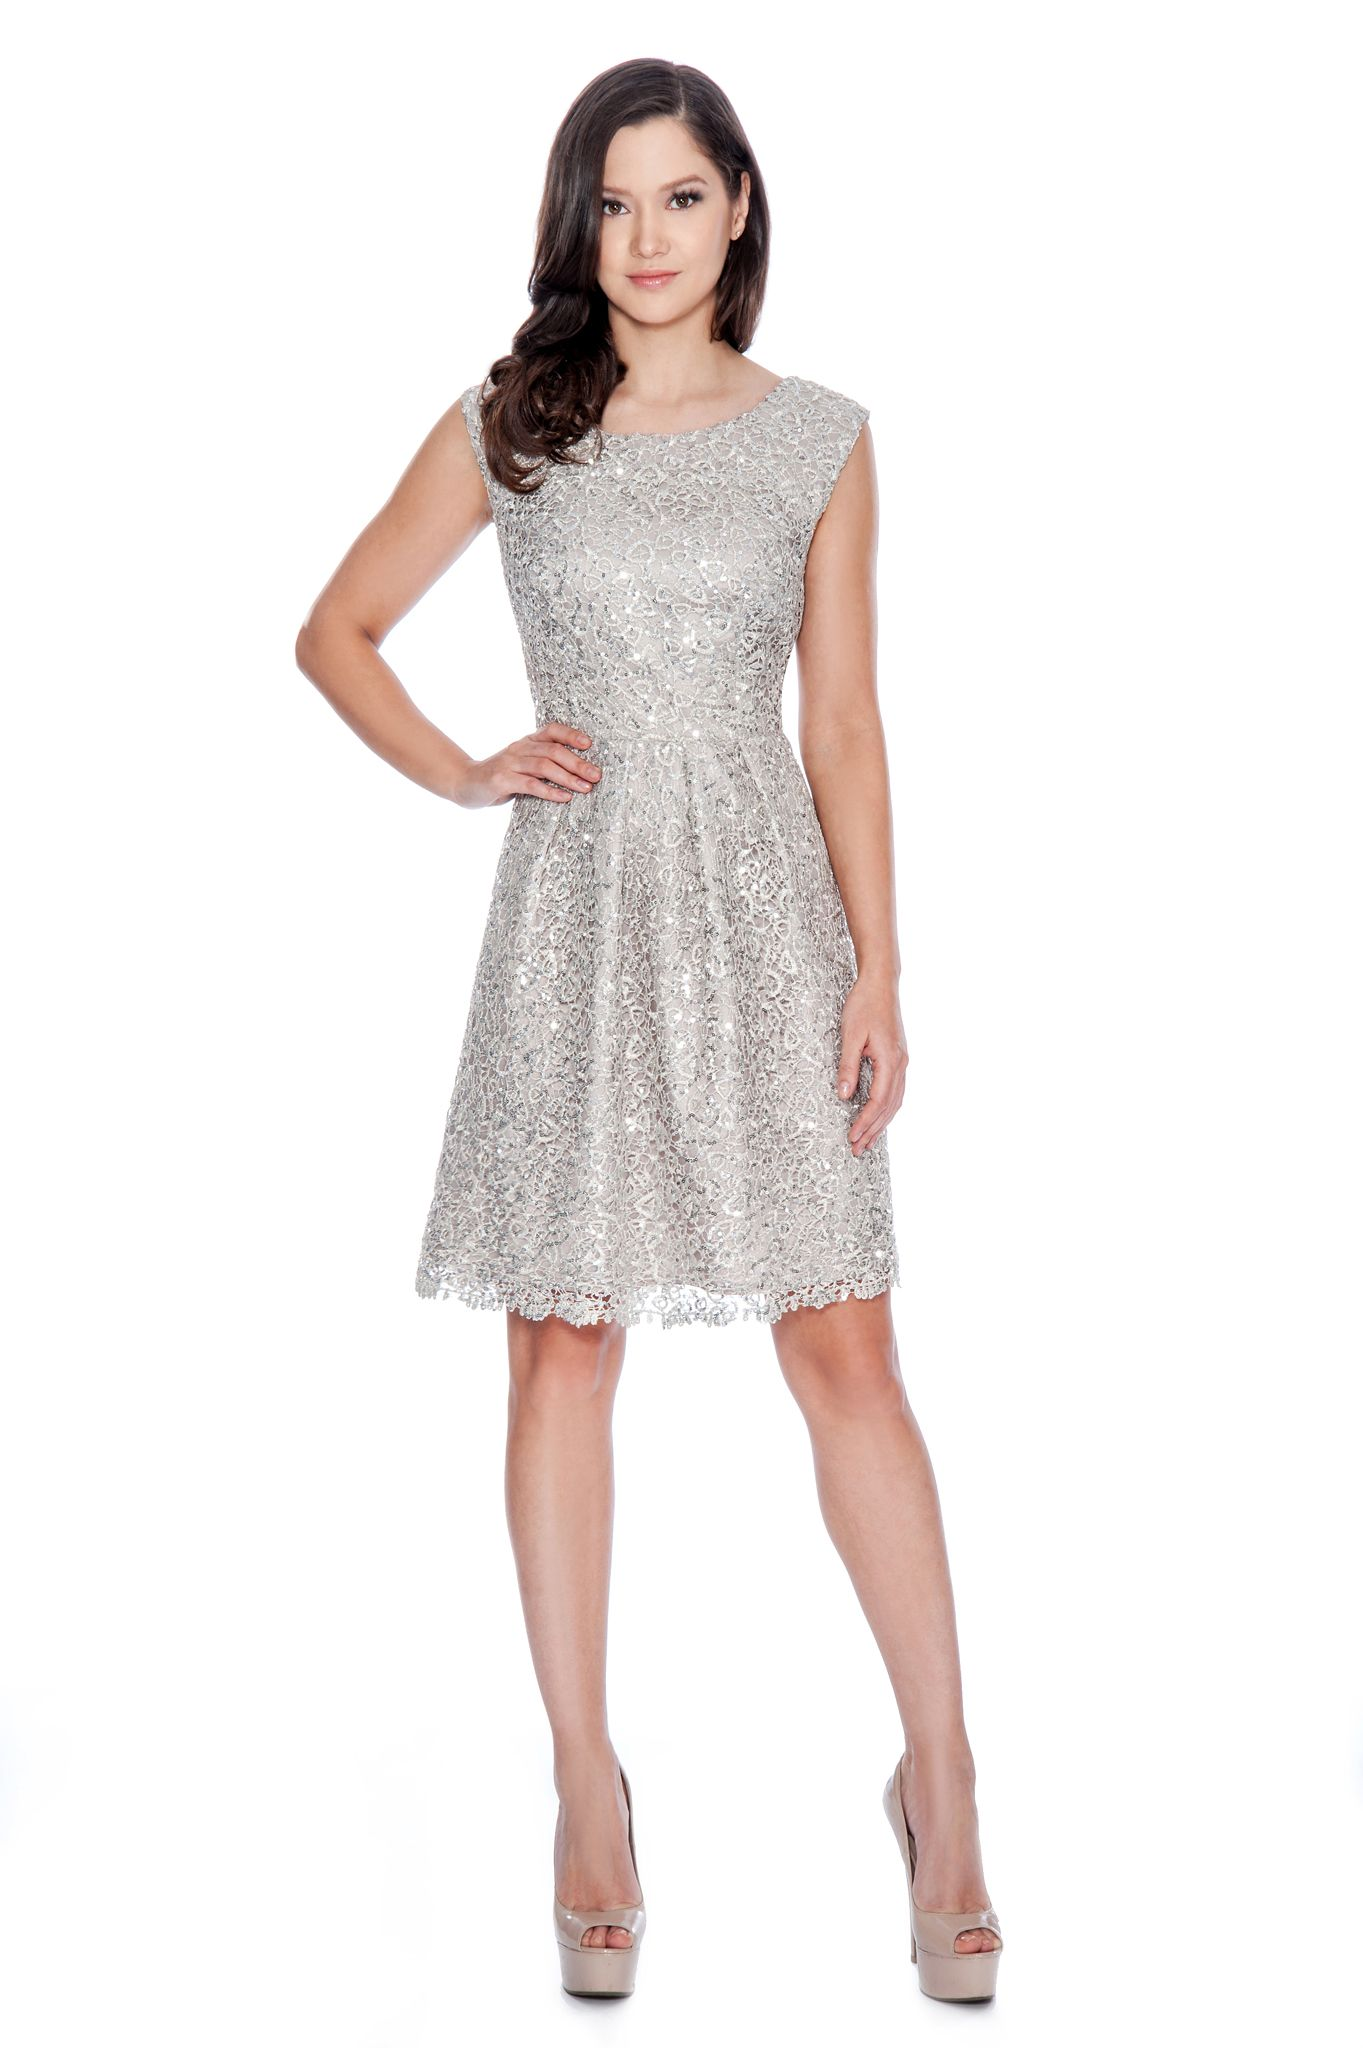 Decode 1.8 Silver Sequin Cocktail Dress. Style #182708 #decode18 ...